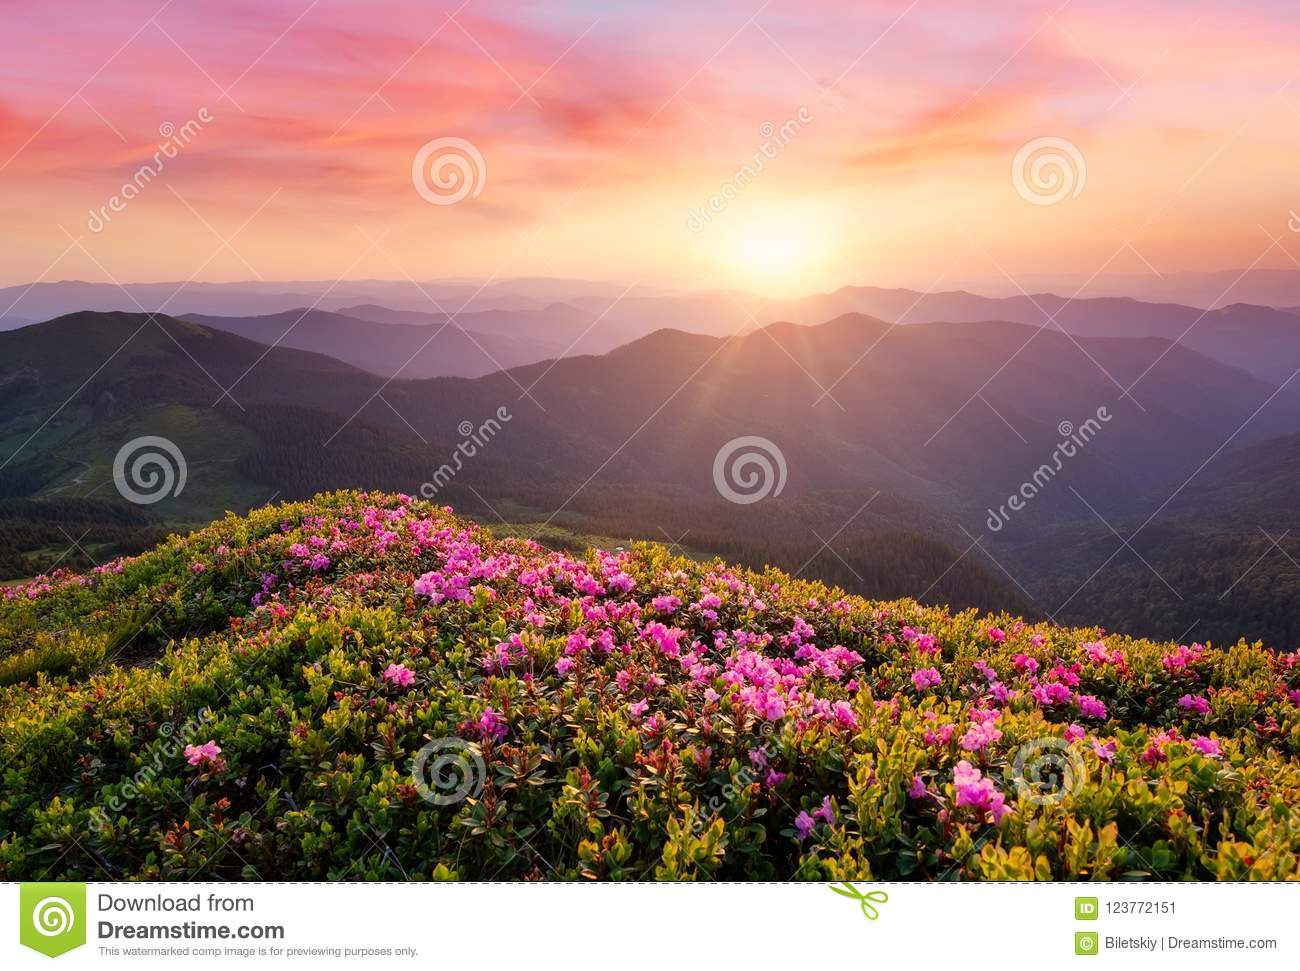 Mountains during flowers blossom and sunrise.